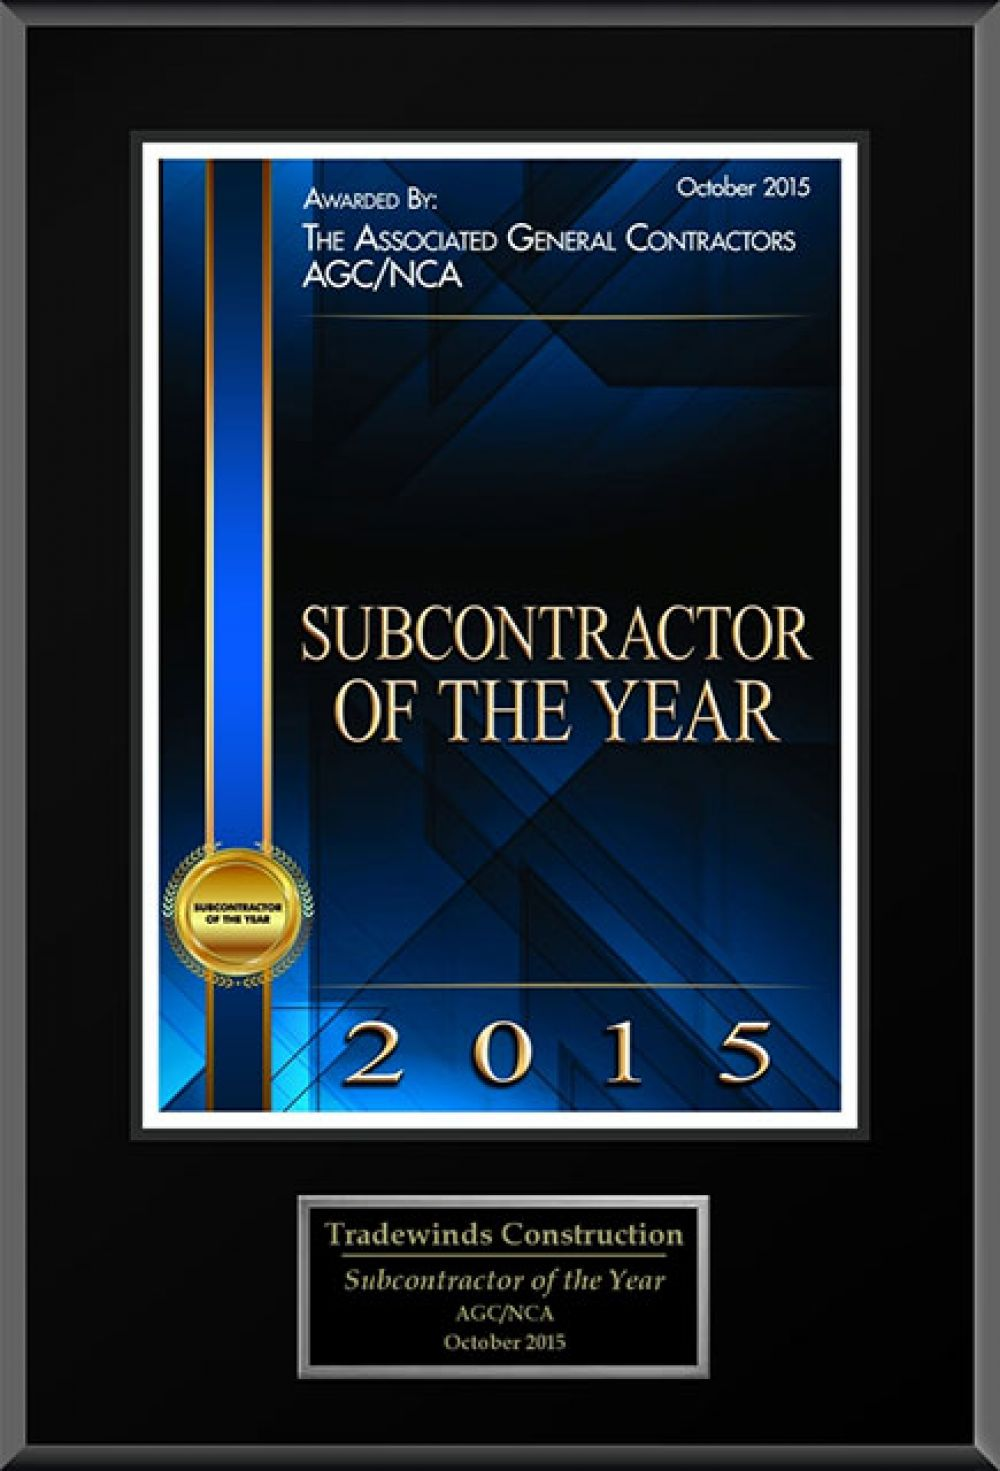 2015 Subcontractor Of The Year